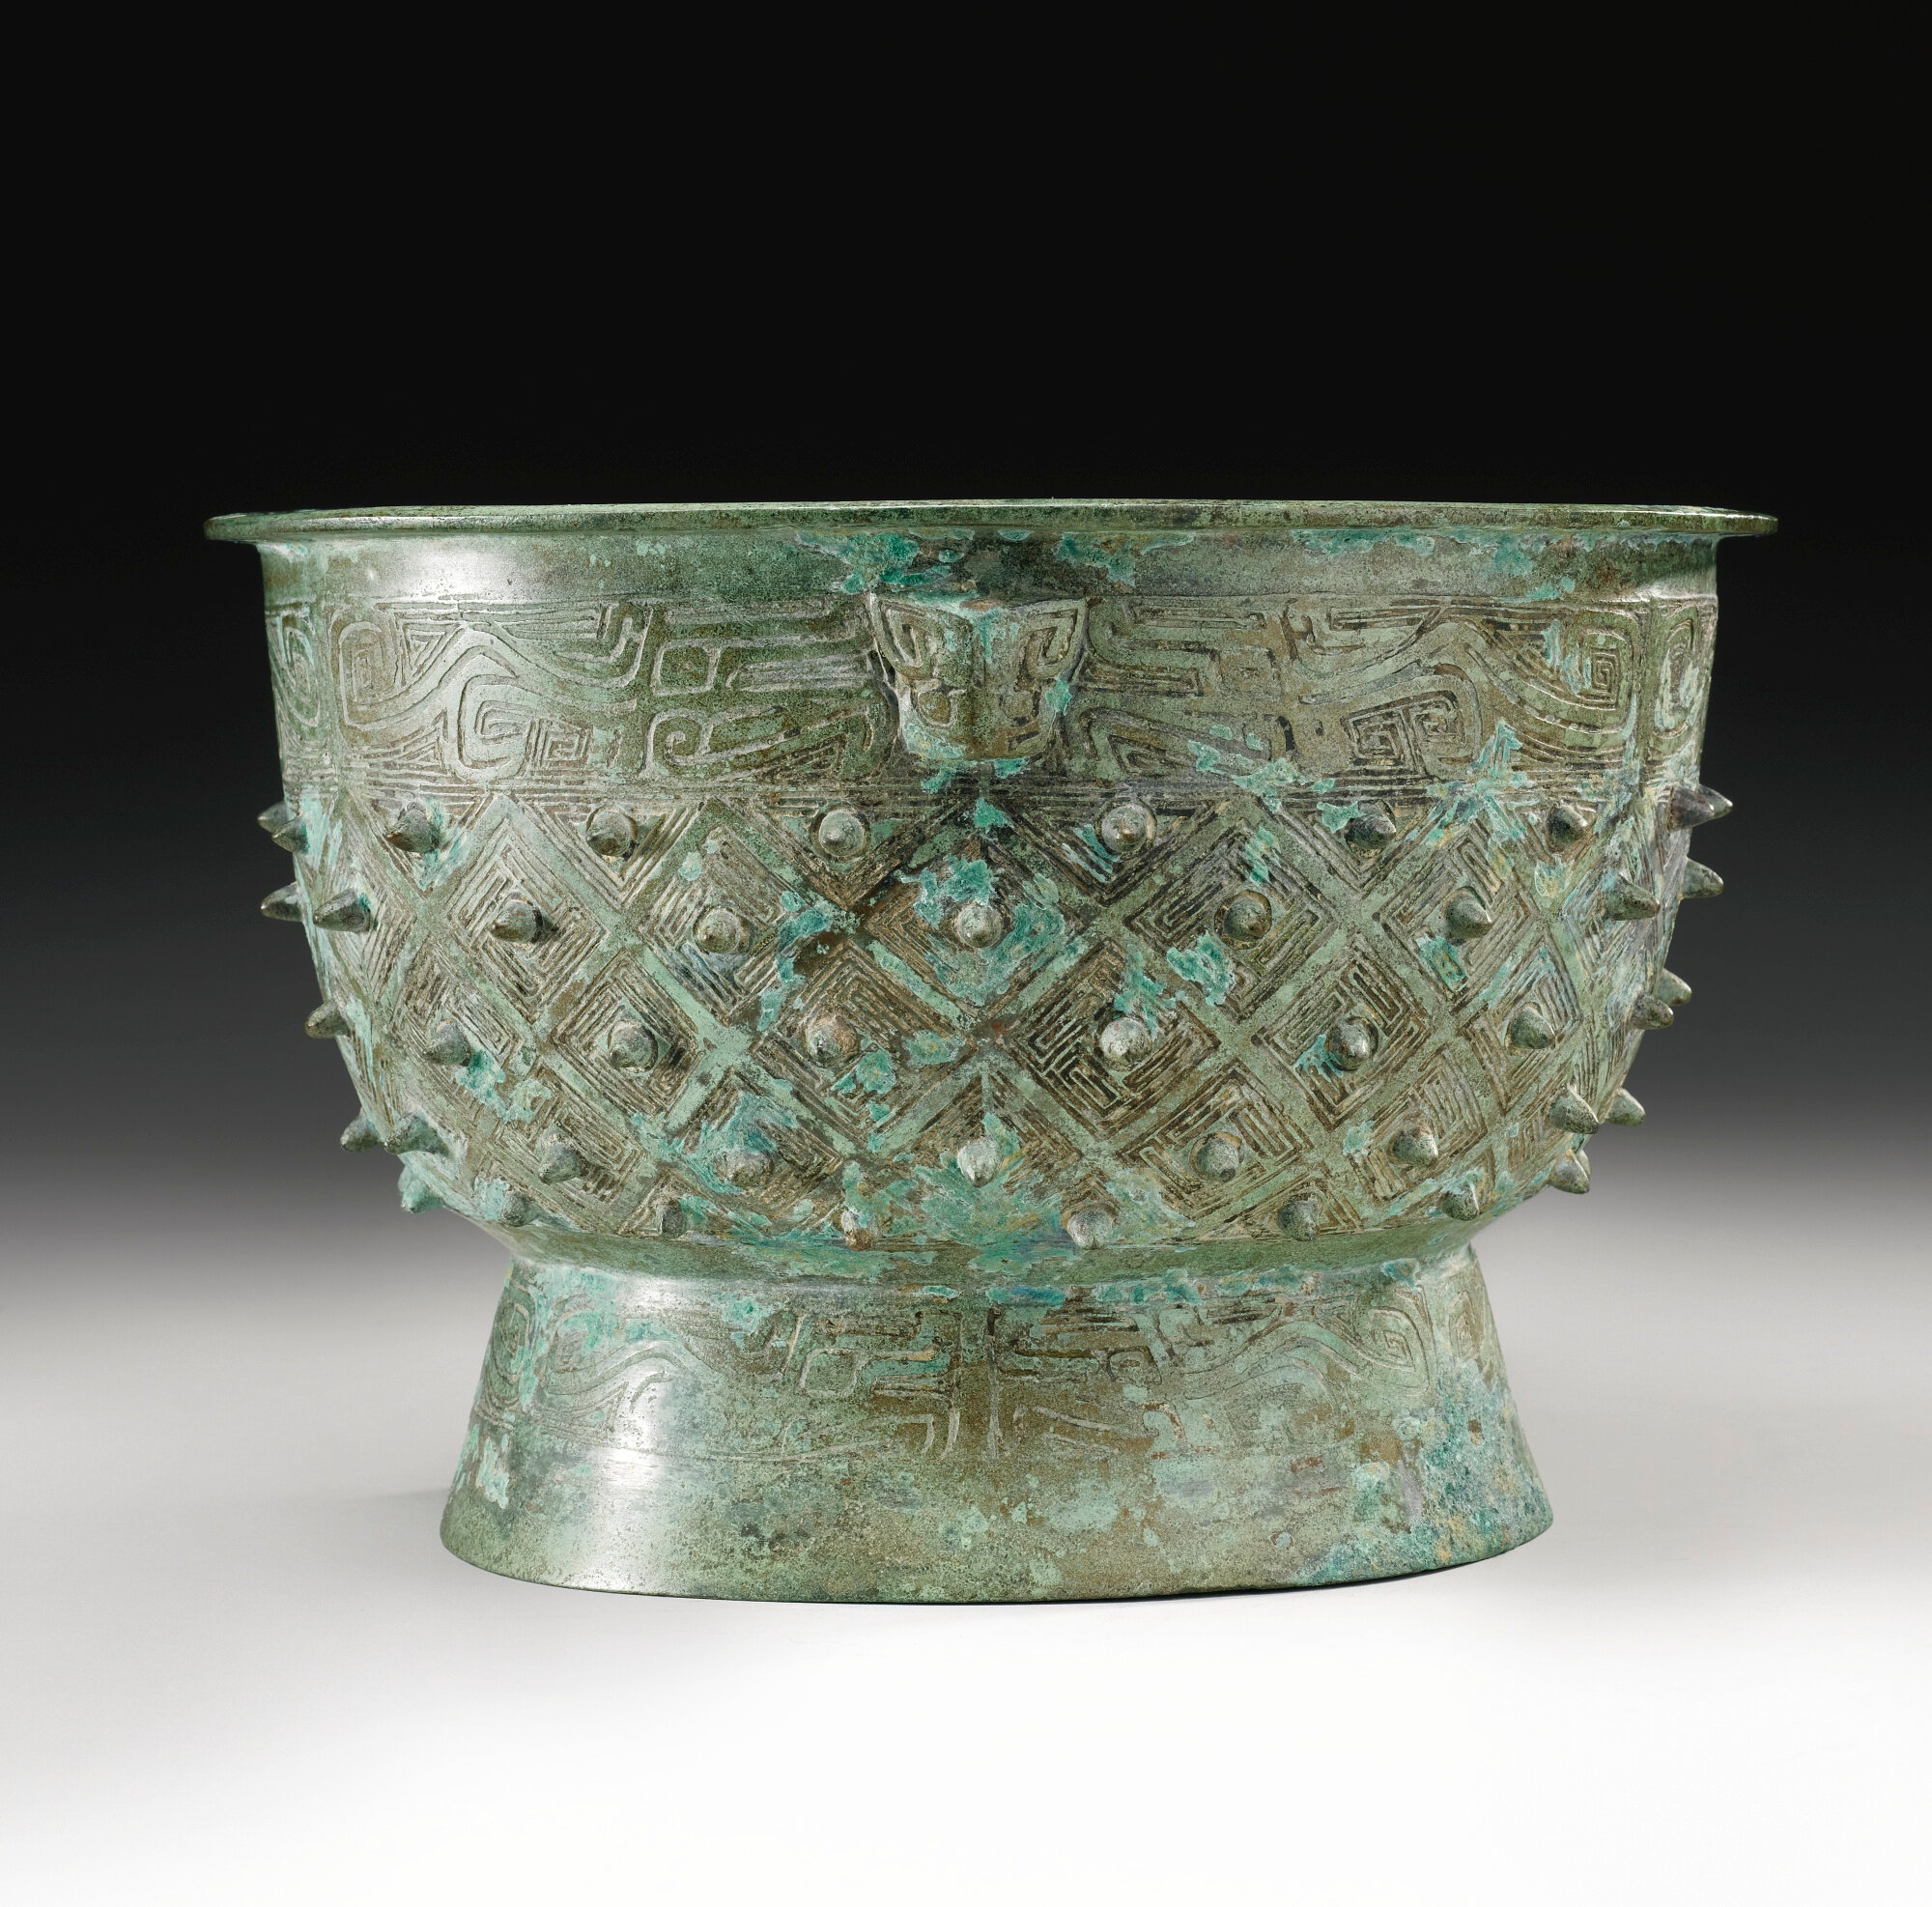 An archaic bronze ritual food vessel, Yu, late Shang dynasty, 13th-11th century BC